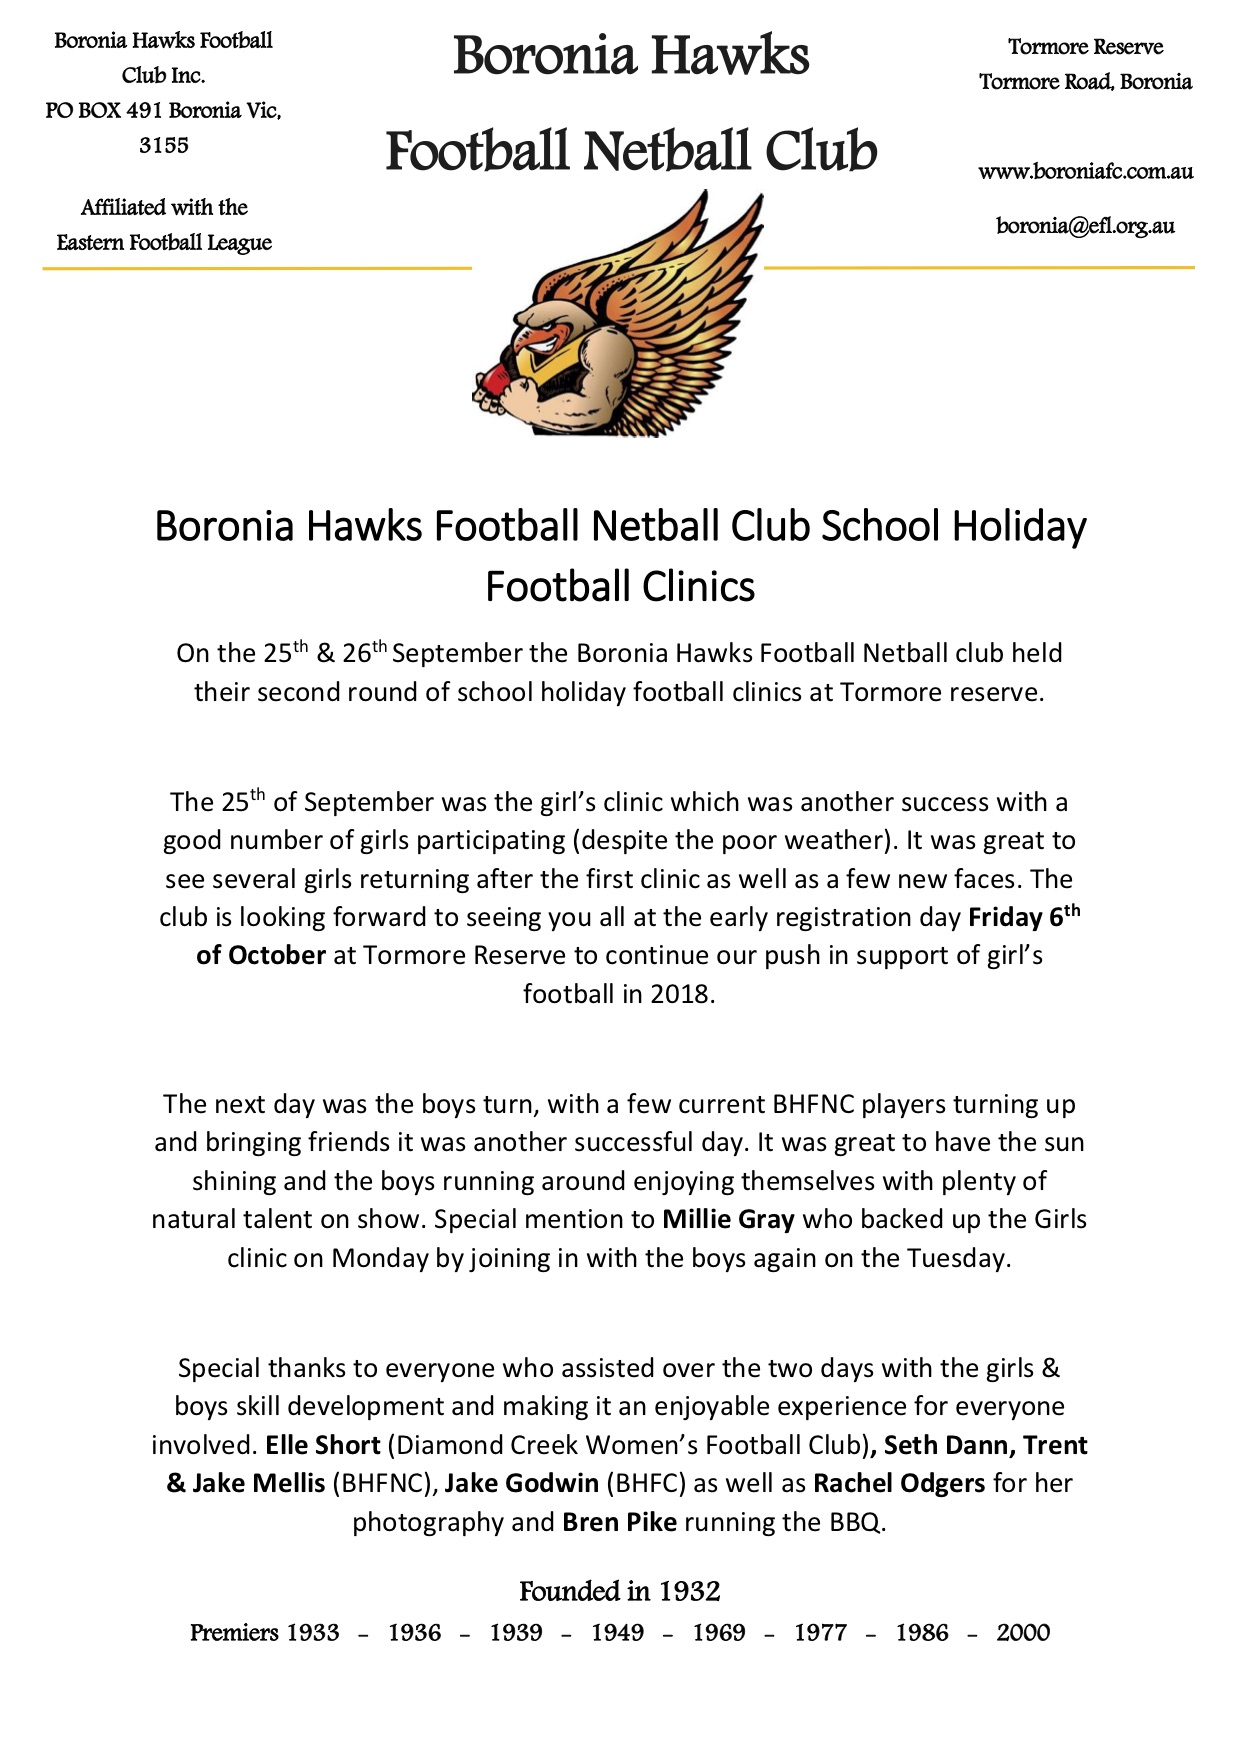 BHFNC September Football Clinics